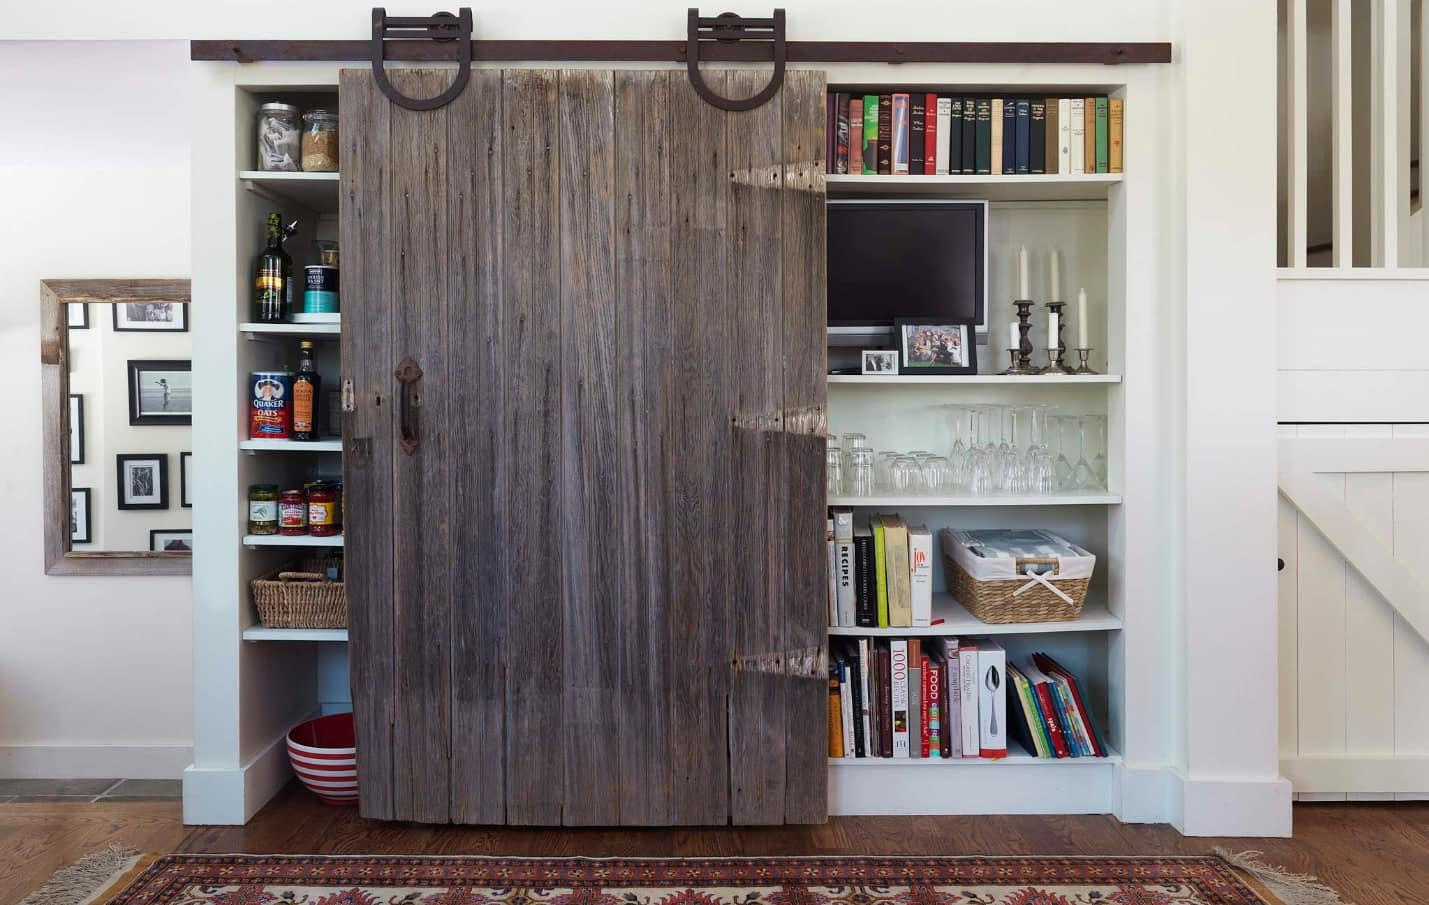 Great Camouflage Storage Ideas For Your Home. Partition barn door for functionality and design